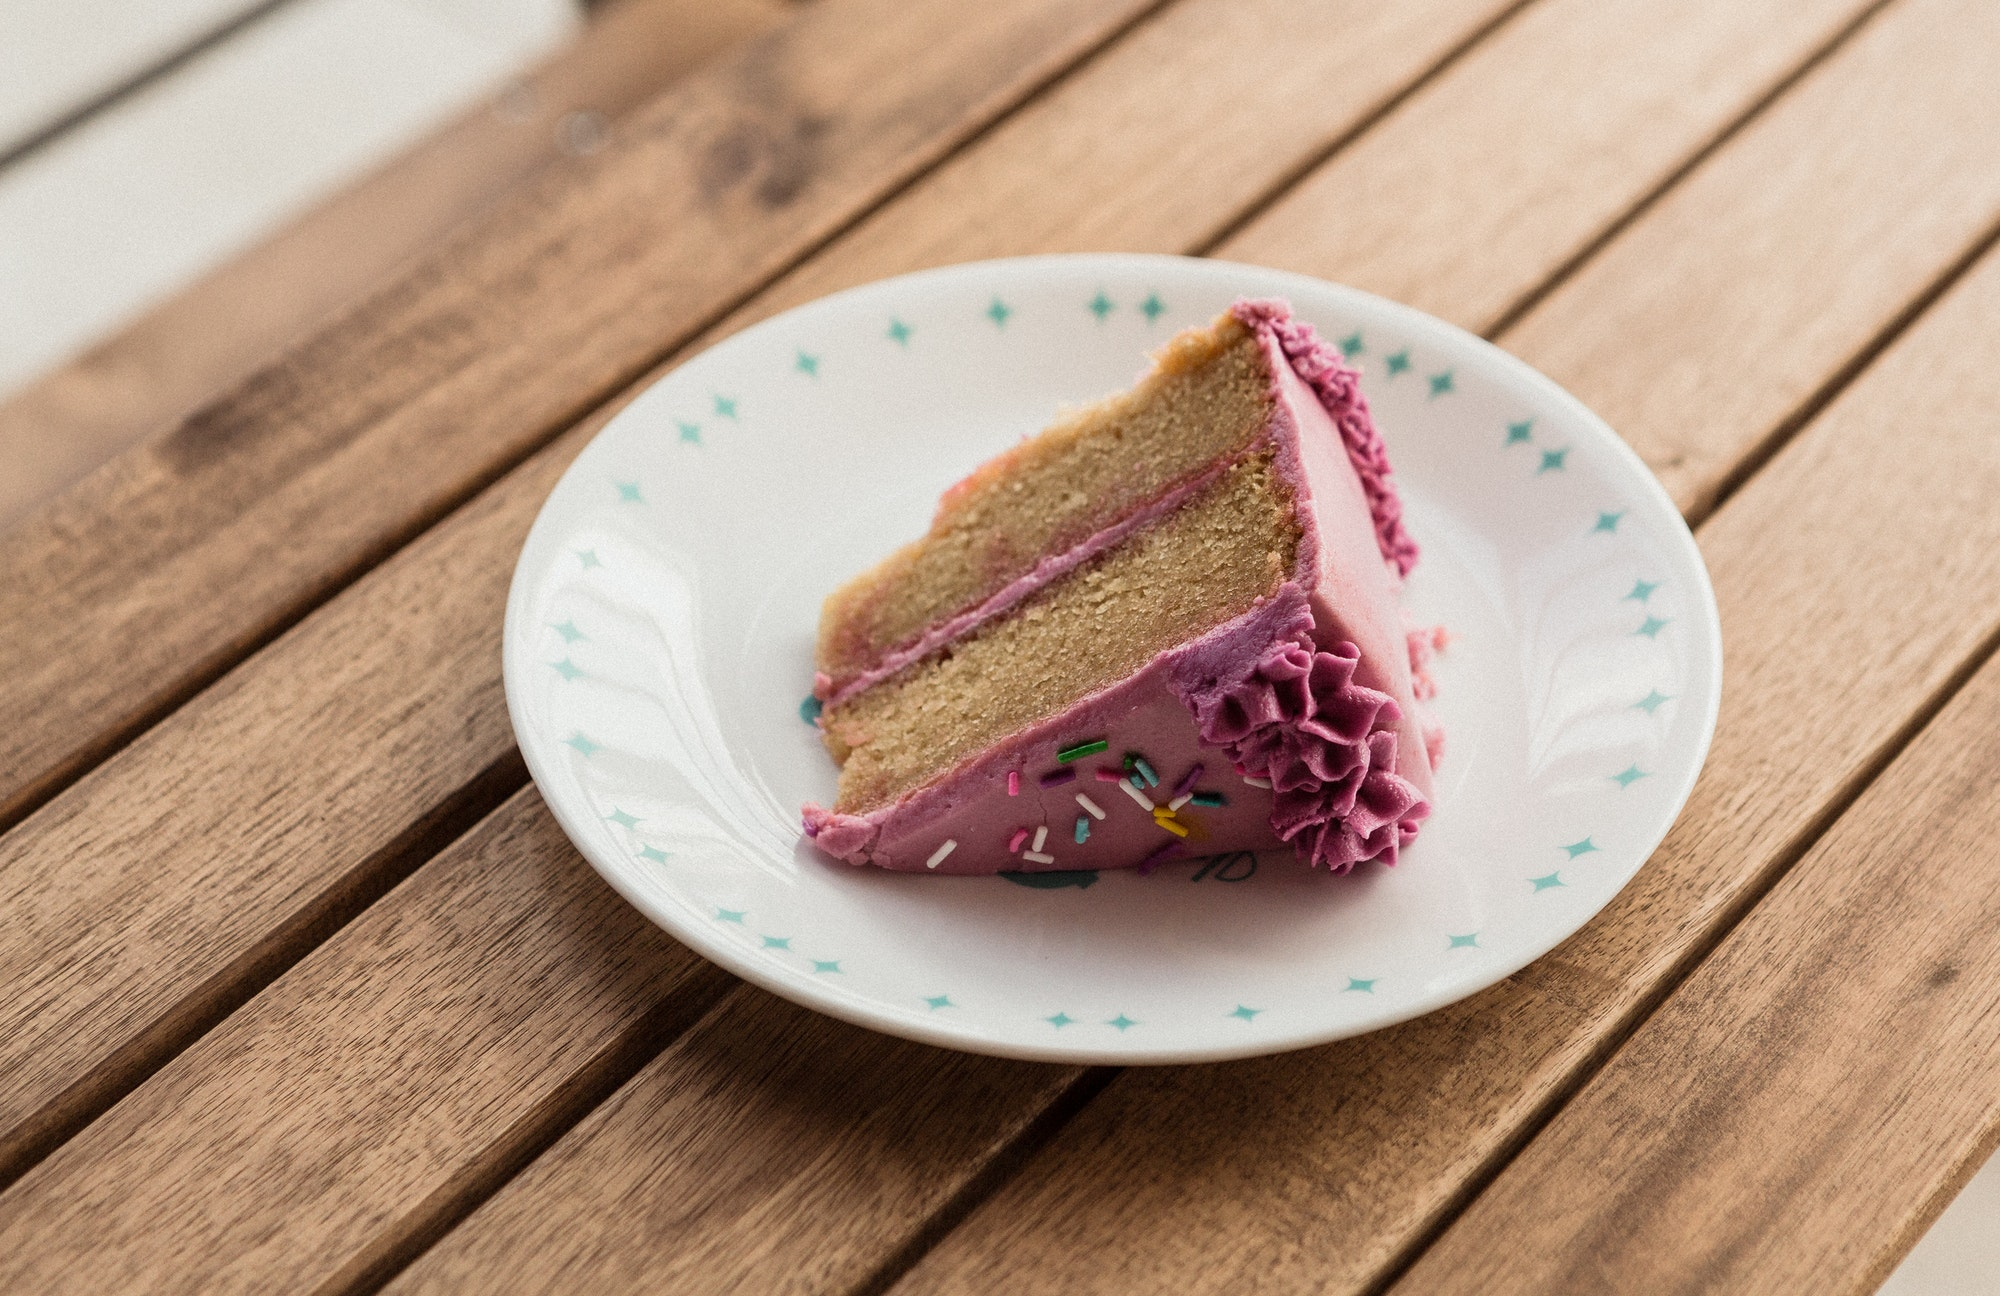 A Slice of Cake on a Table